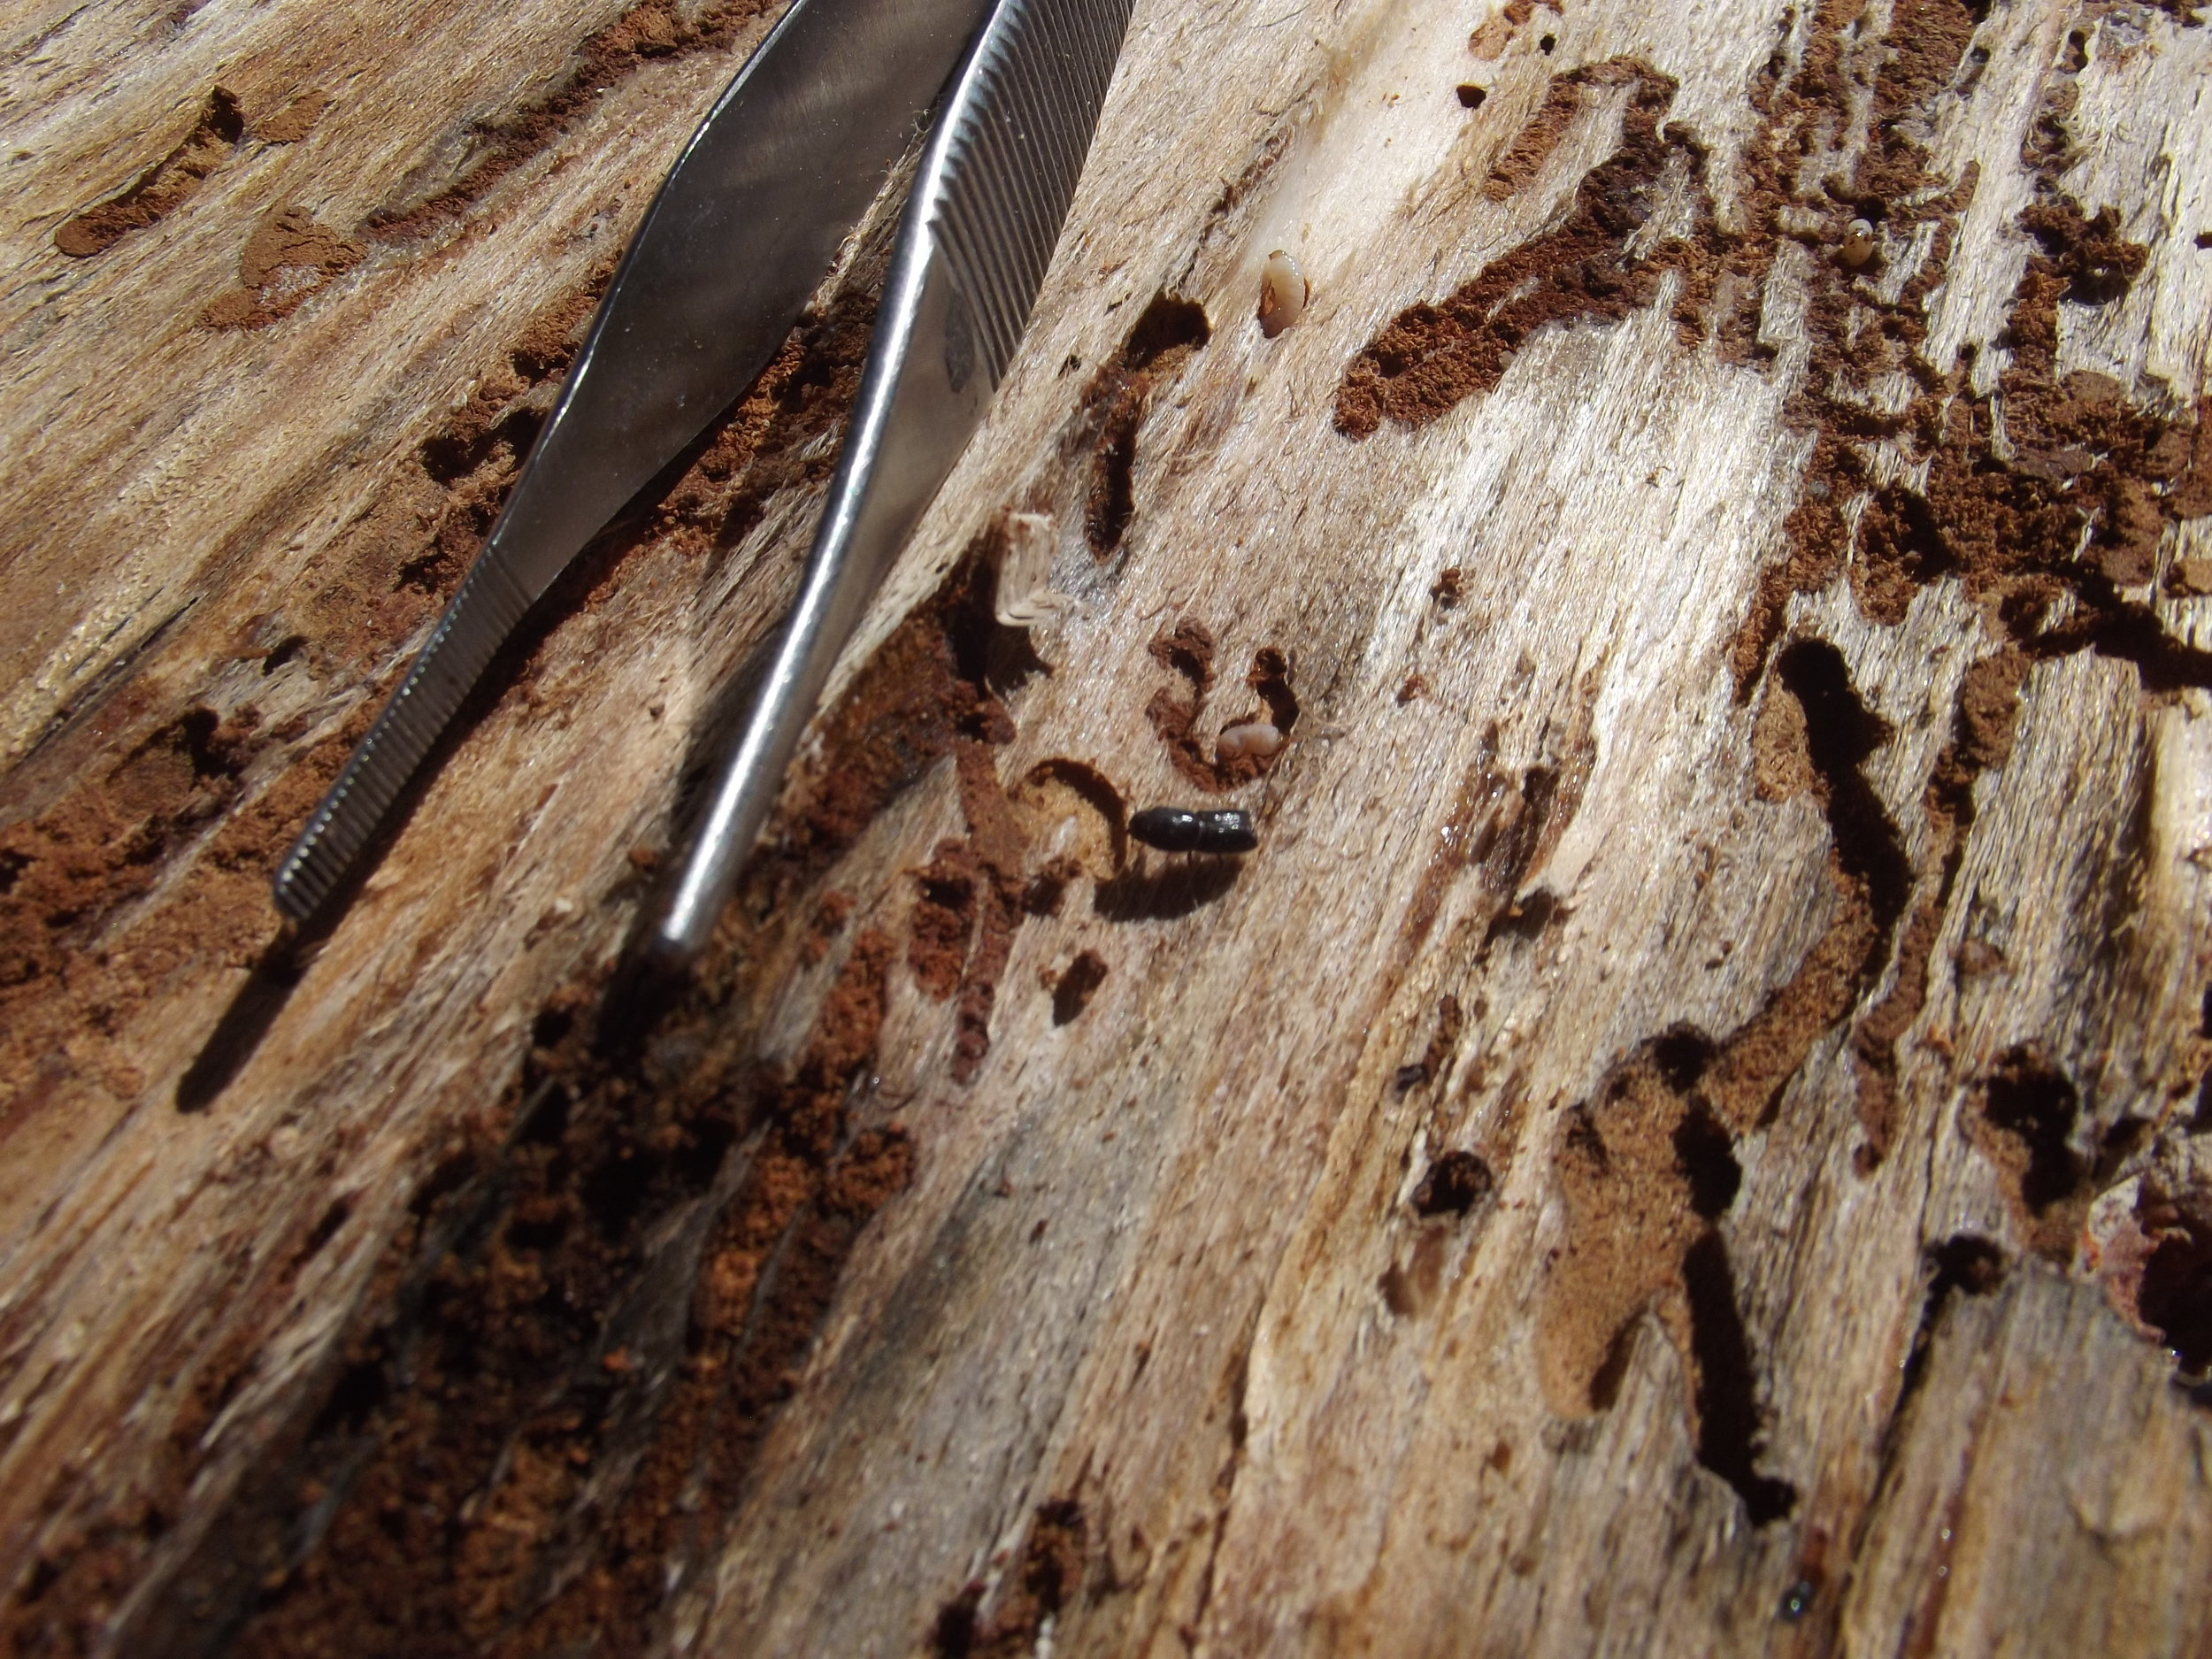 Gorge-insect-disease-tree-care-beetle-bark-bac.jpg